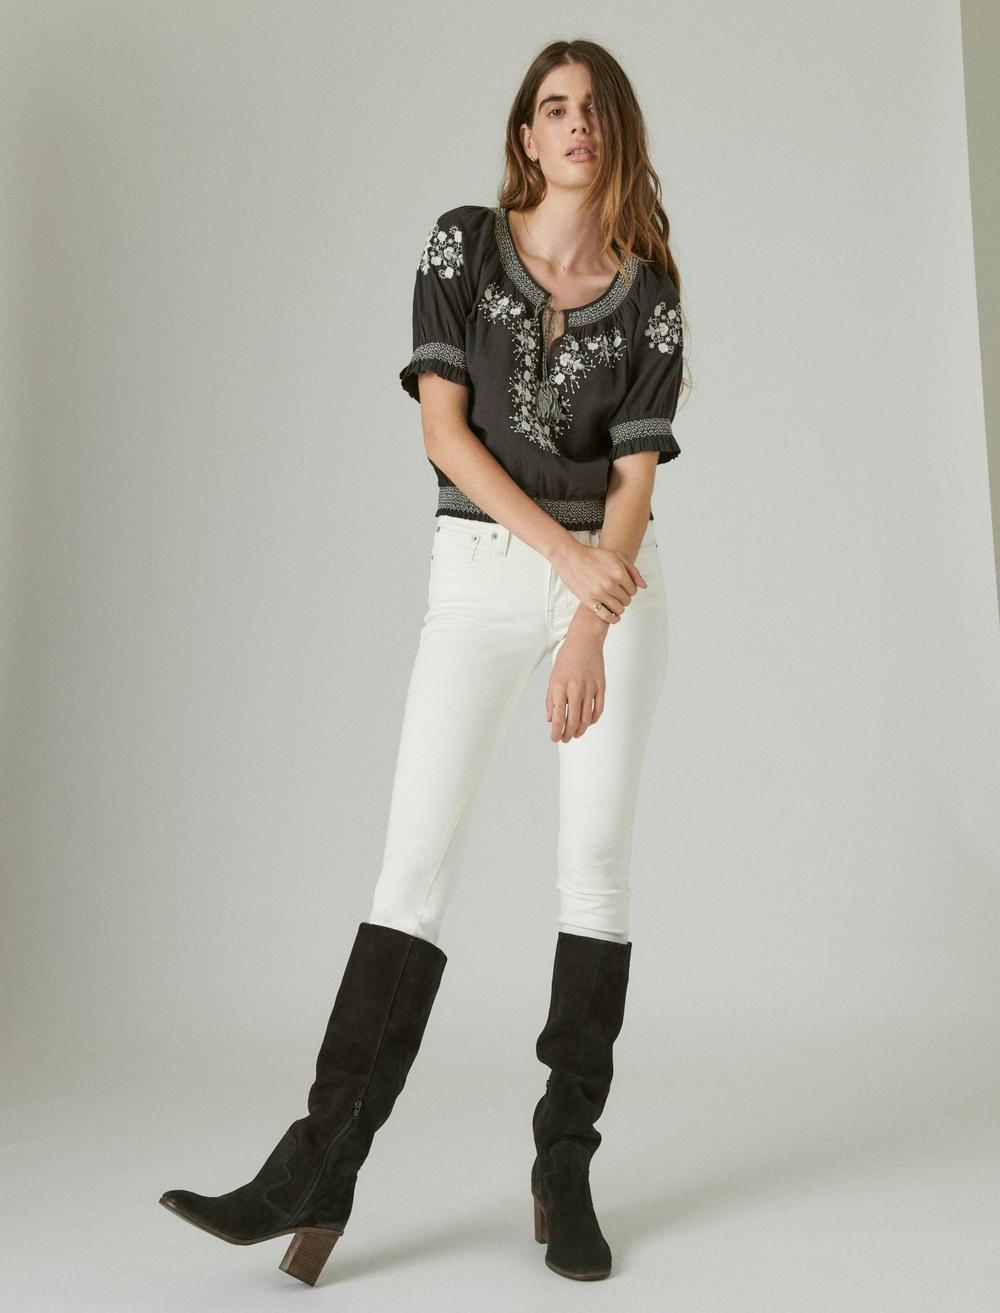 EMBROIDERED SHORT SLEEVE TOP, image 2